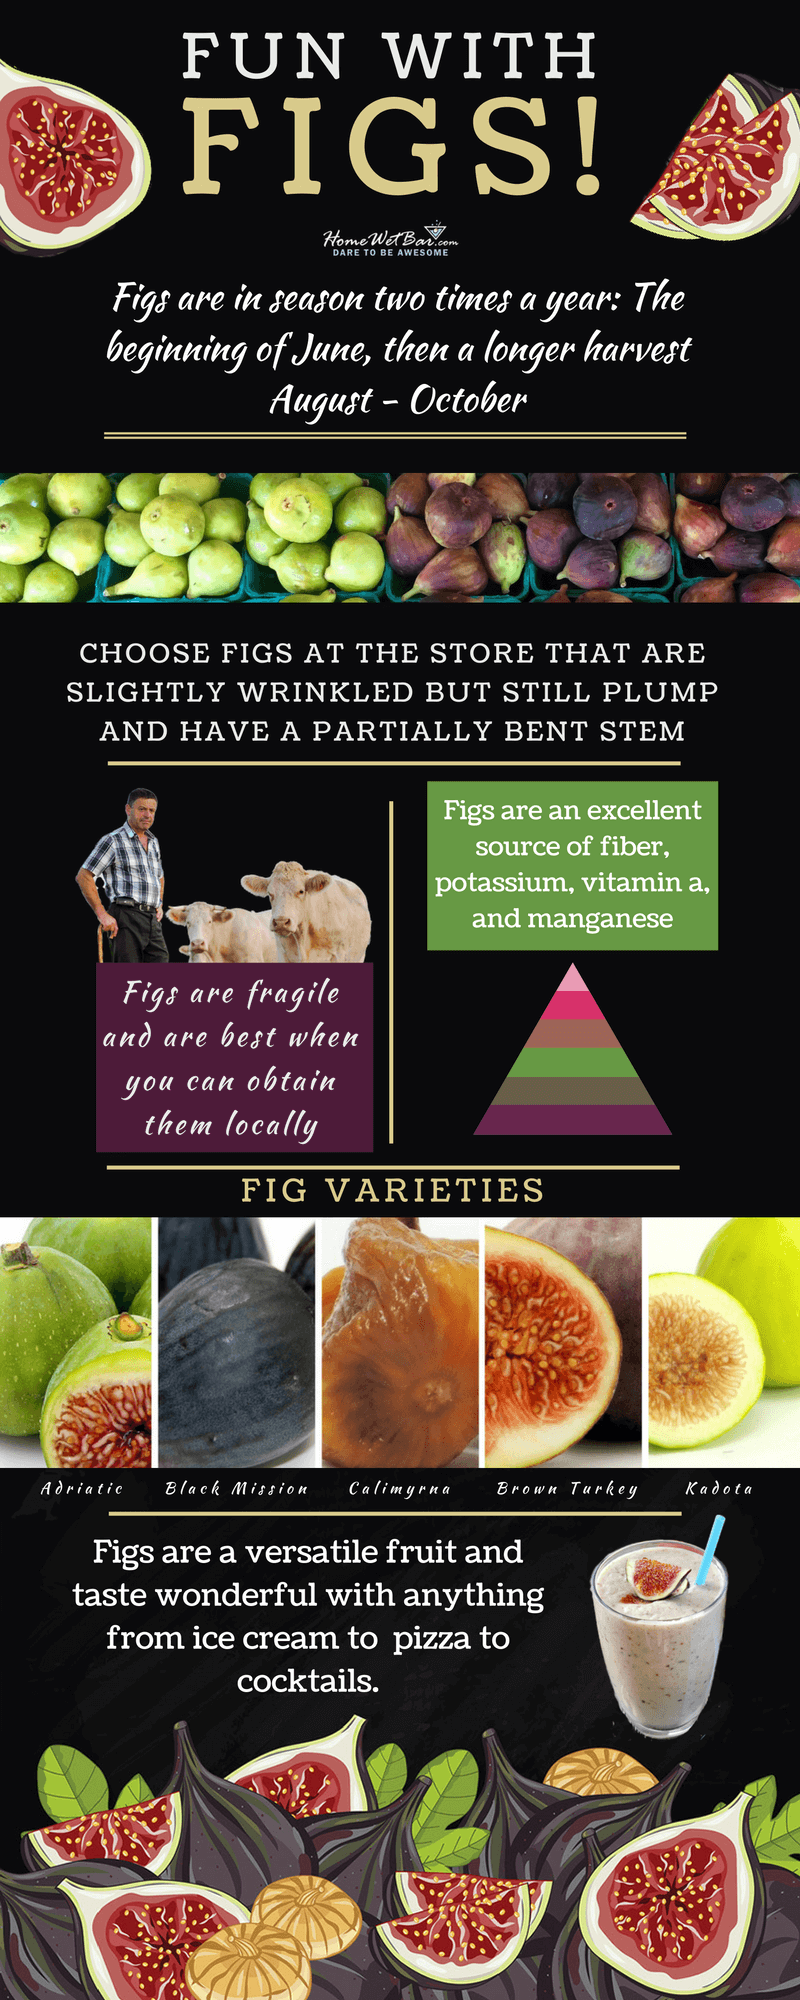 Fun with Figs Infographic